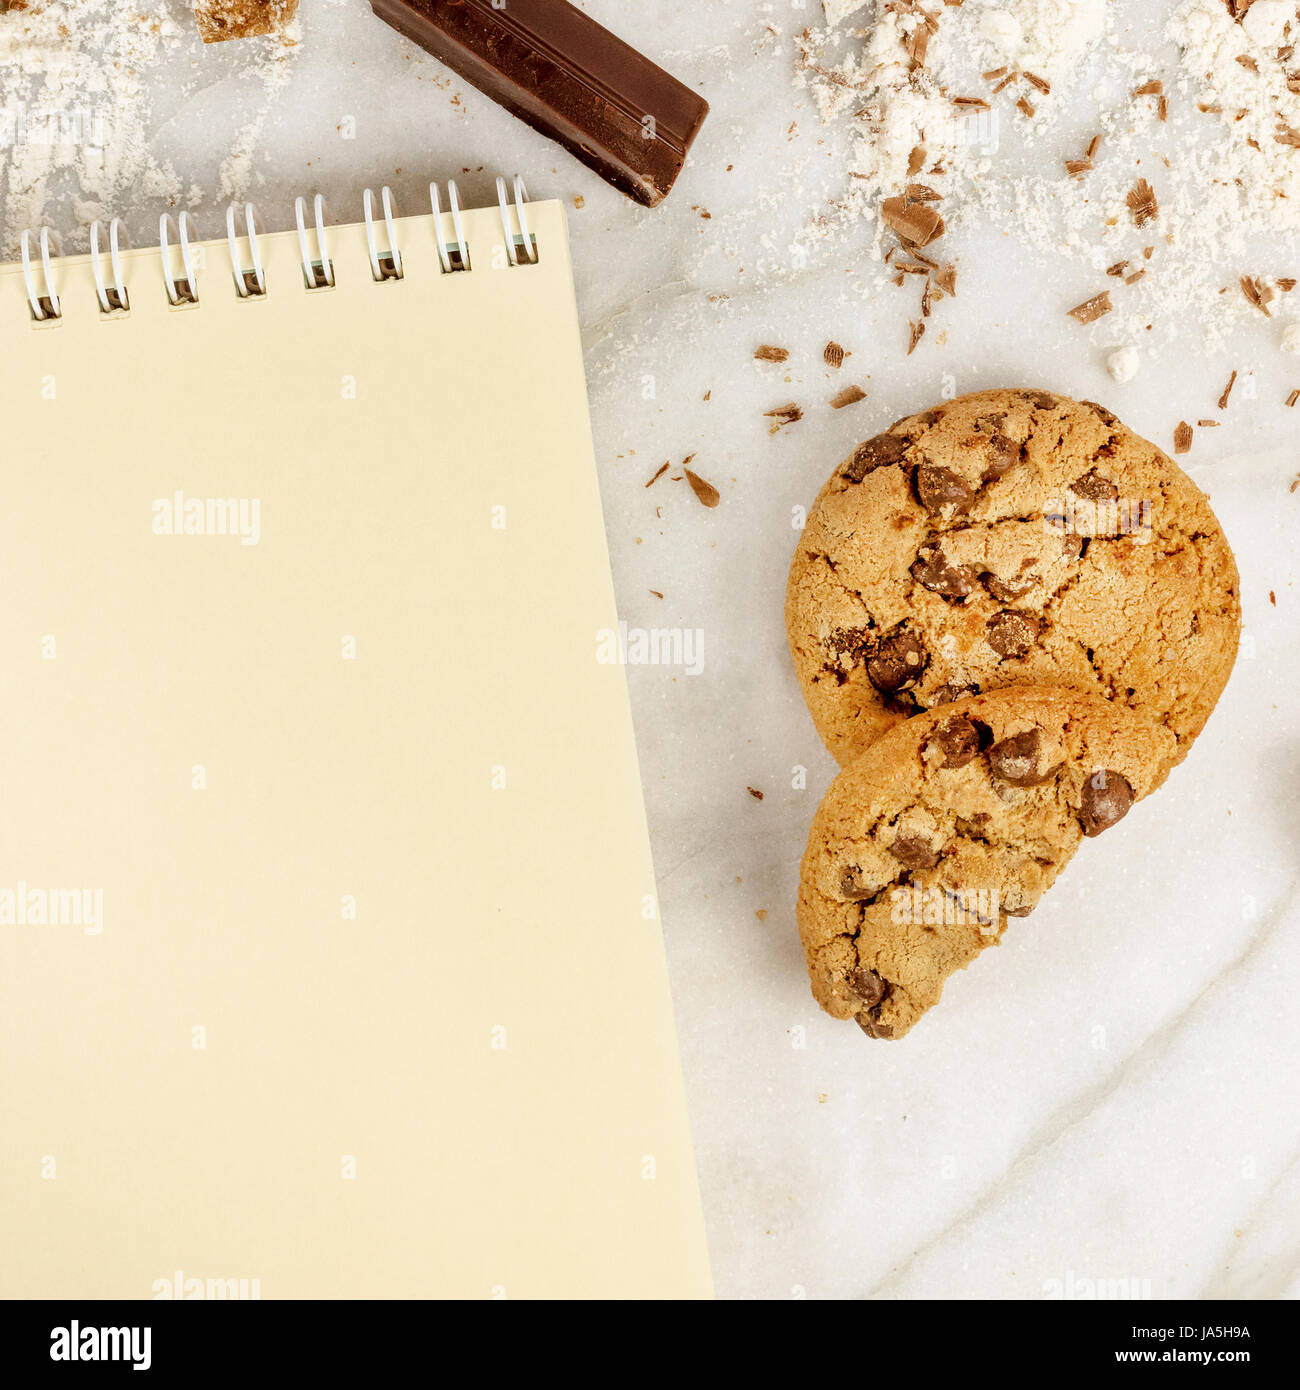 The process of making chocolate chips cookies. Overhead shot of biscuits with chocolate pieces, flour, and cane - Stock Image